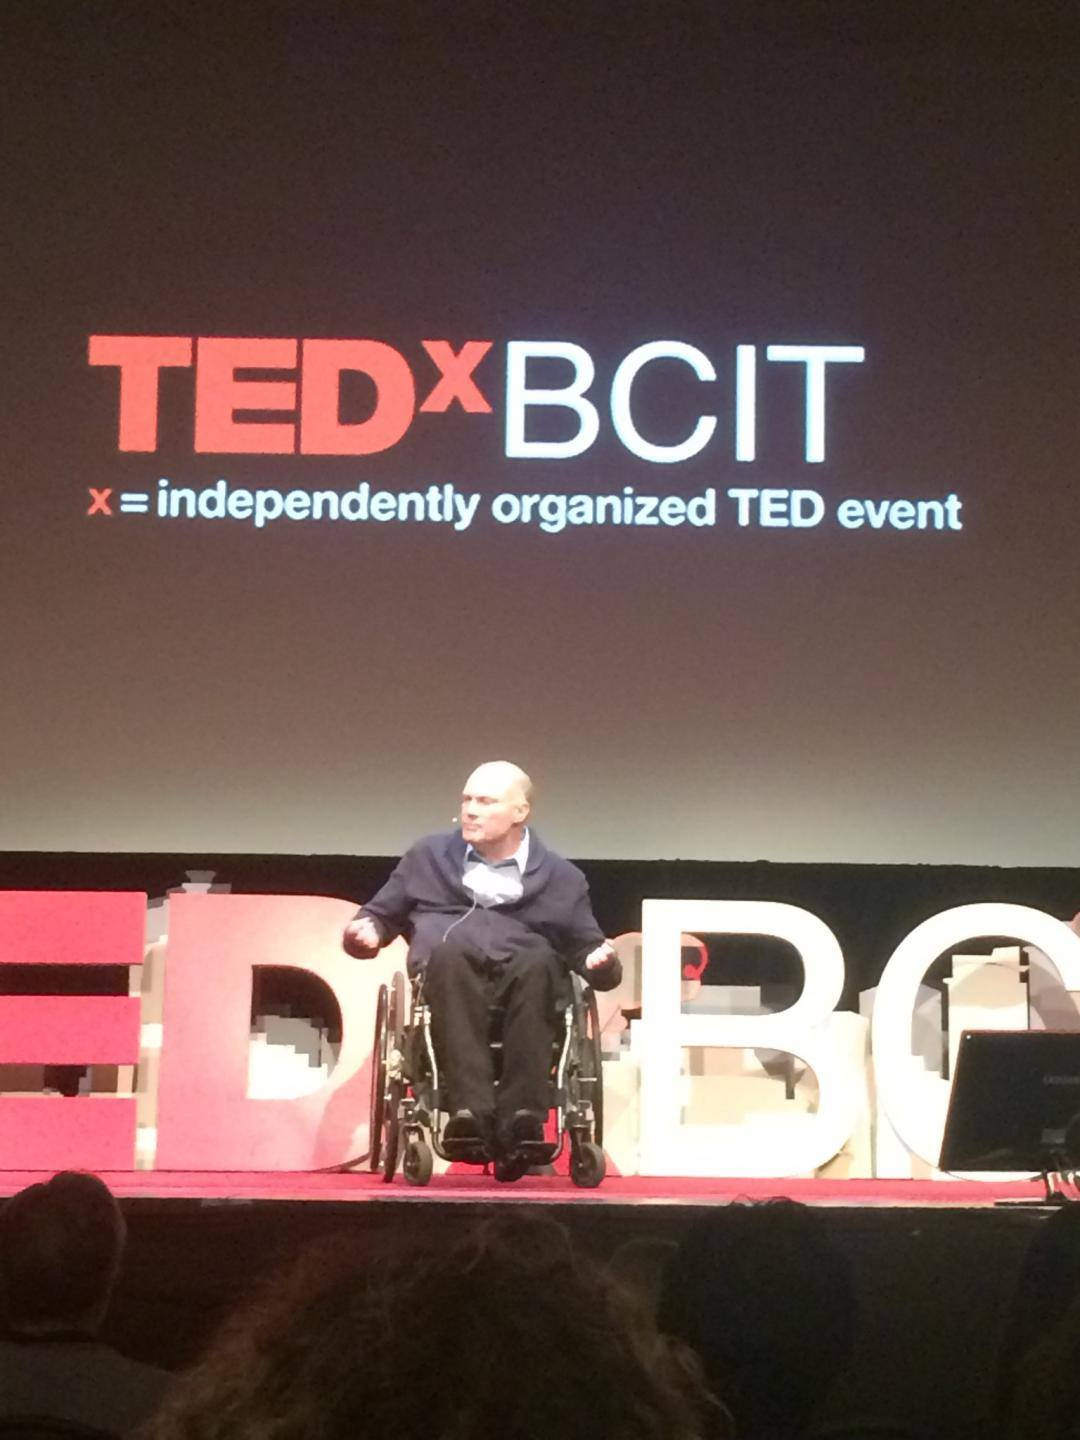 Gary Birch on stage during his TEDxBCIT talk